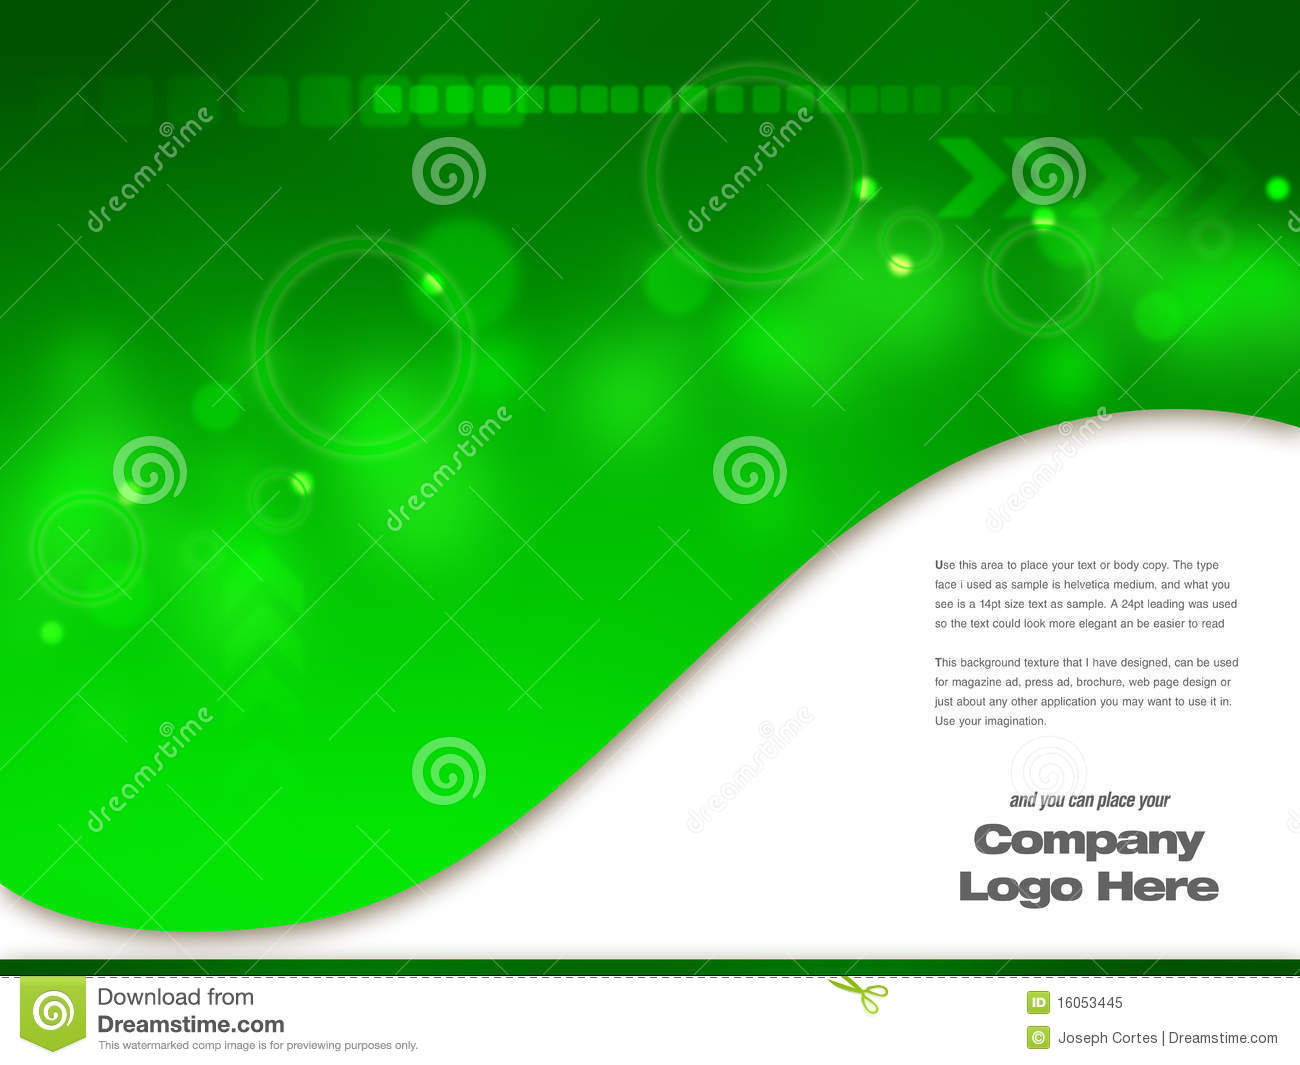 graphic design templates free